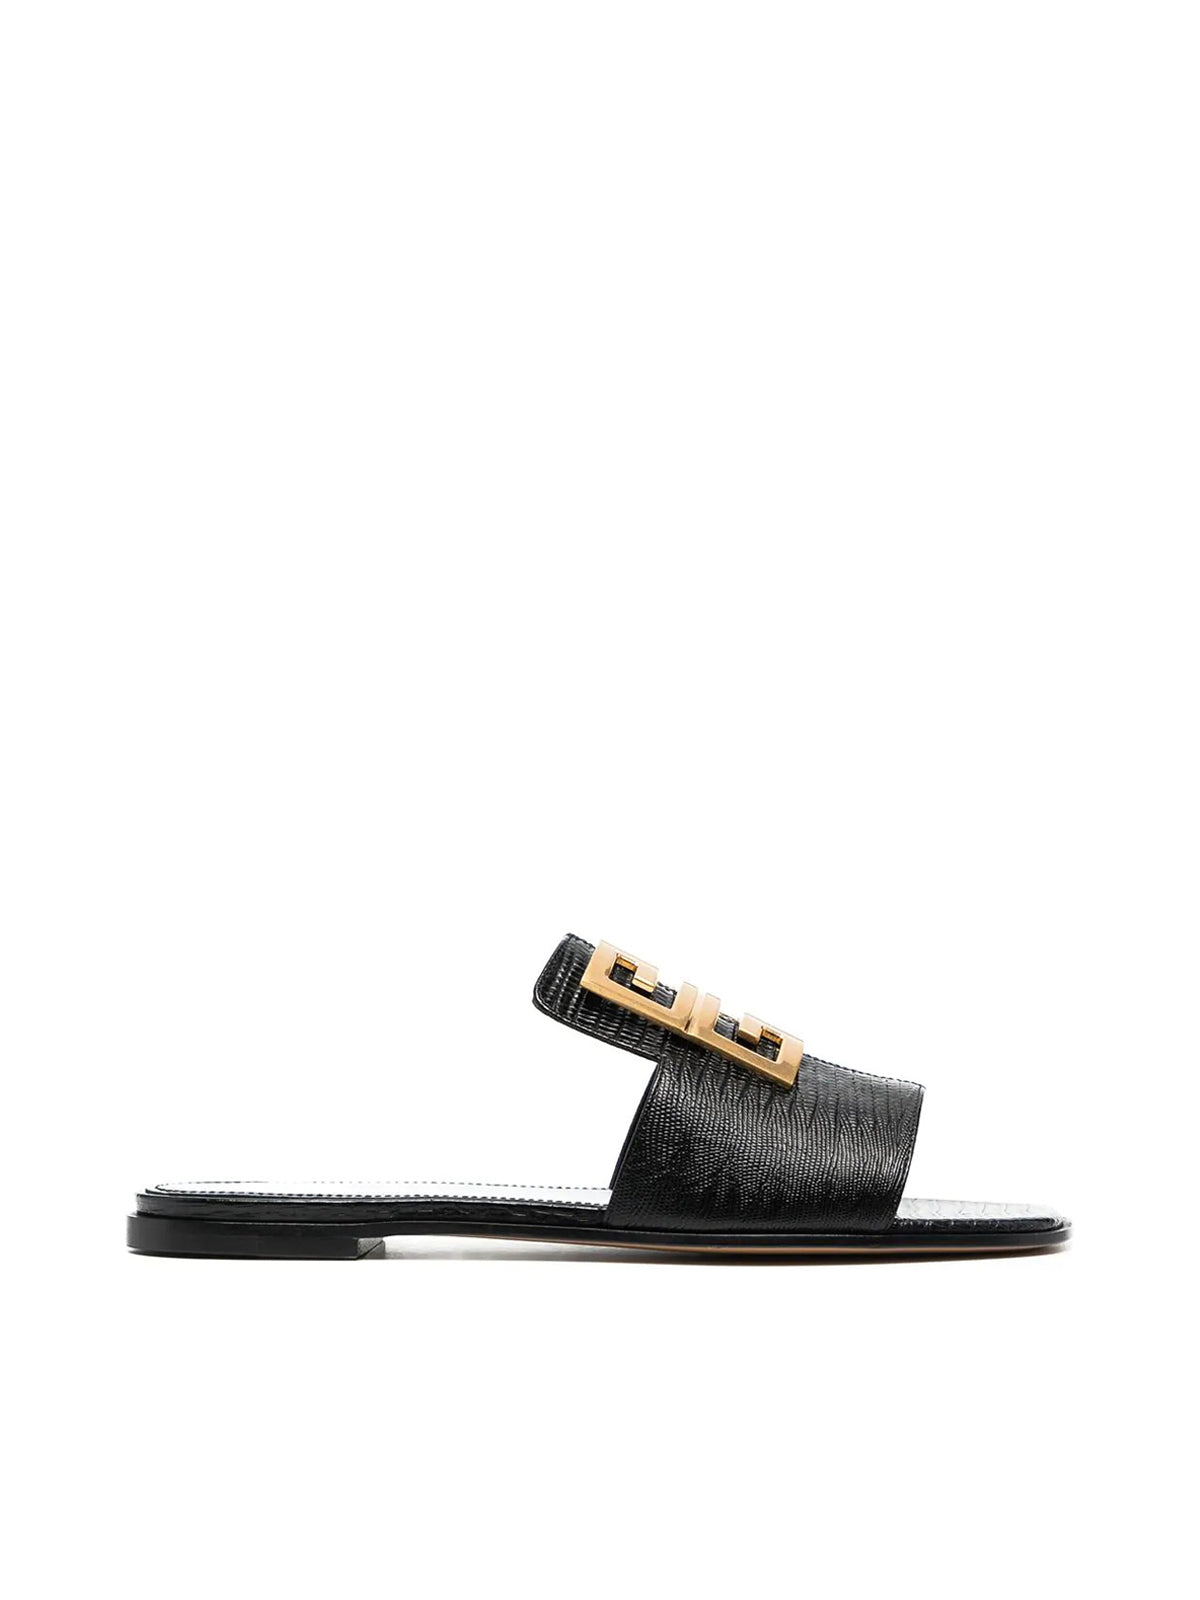 Givenchy Leathers 4G LEATHER SANDALS